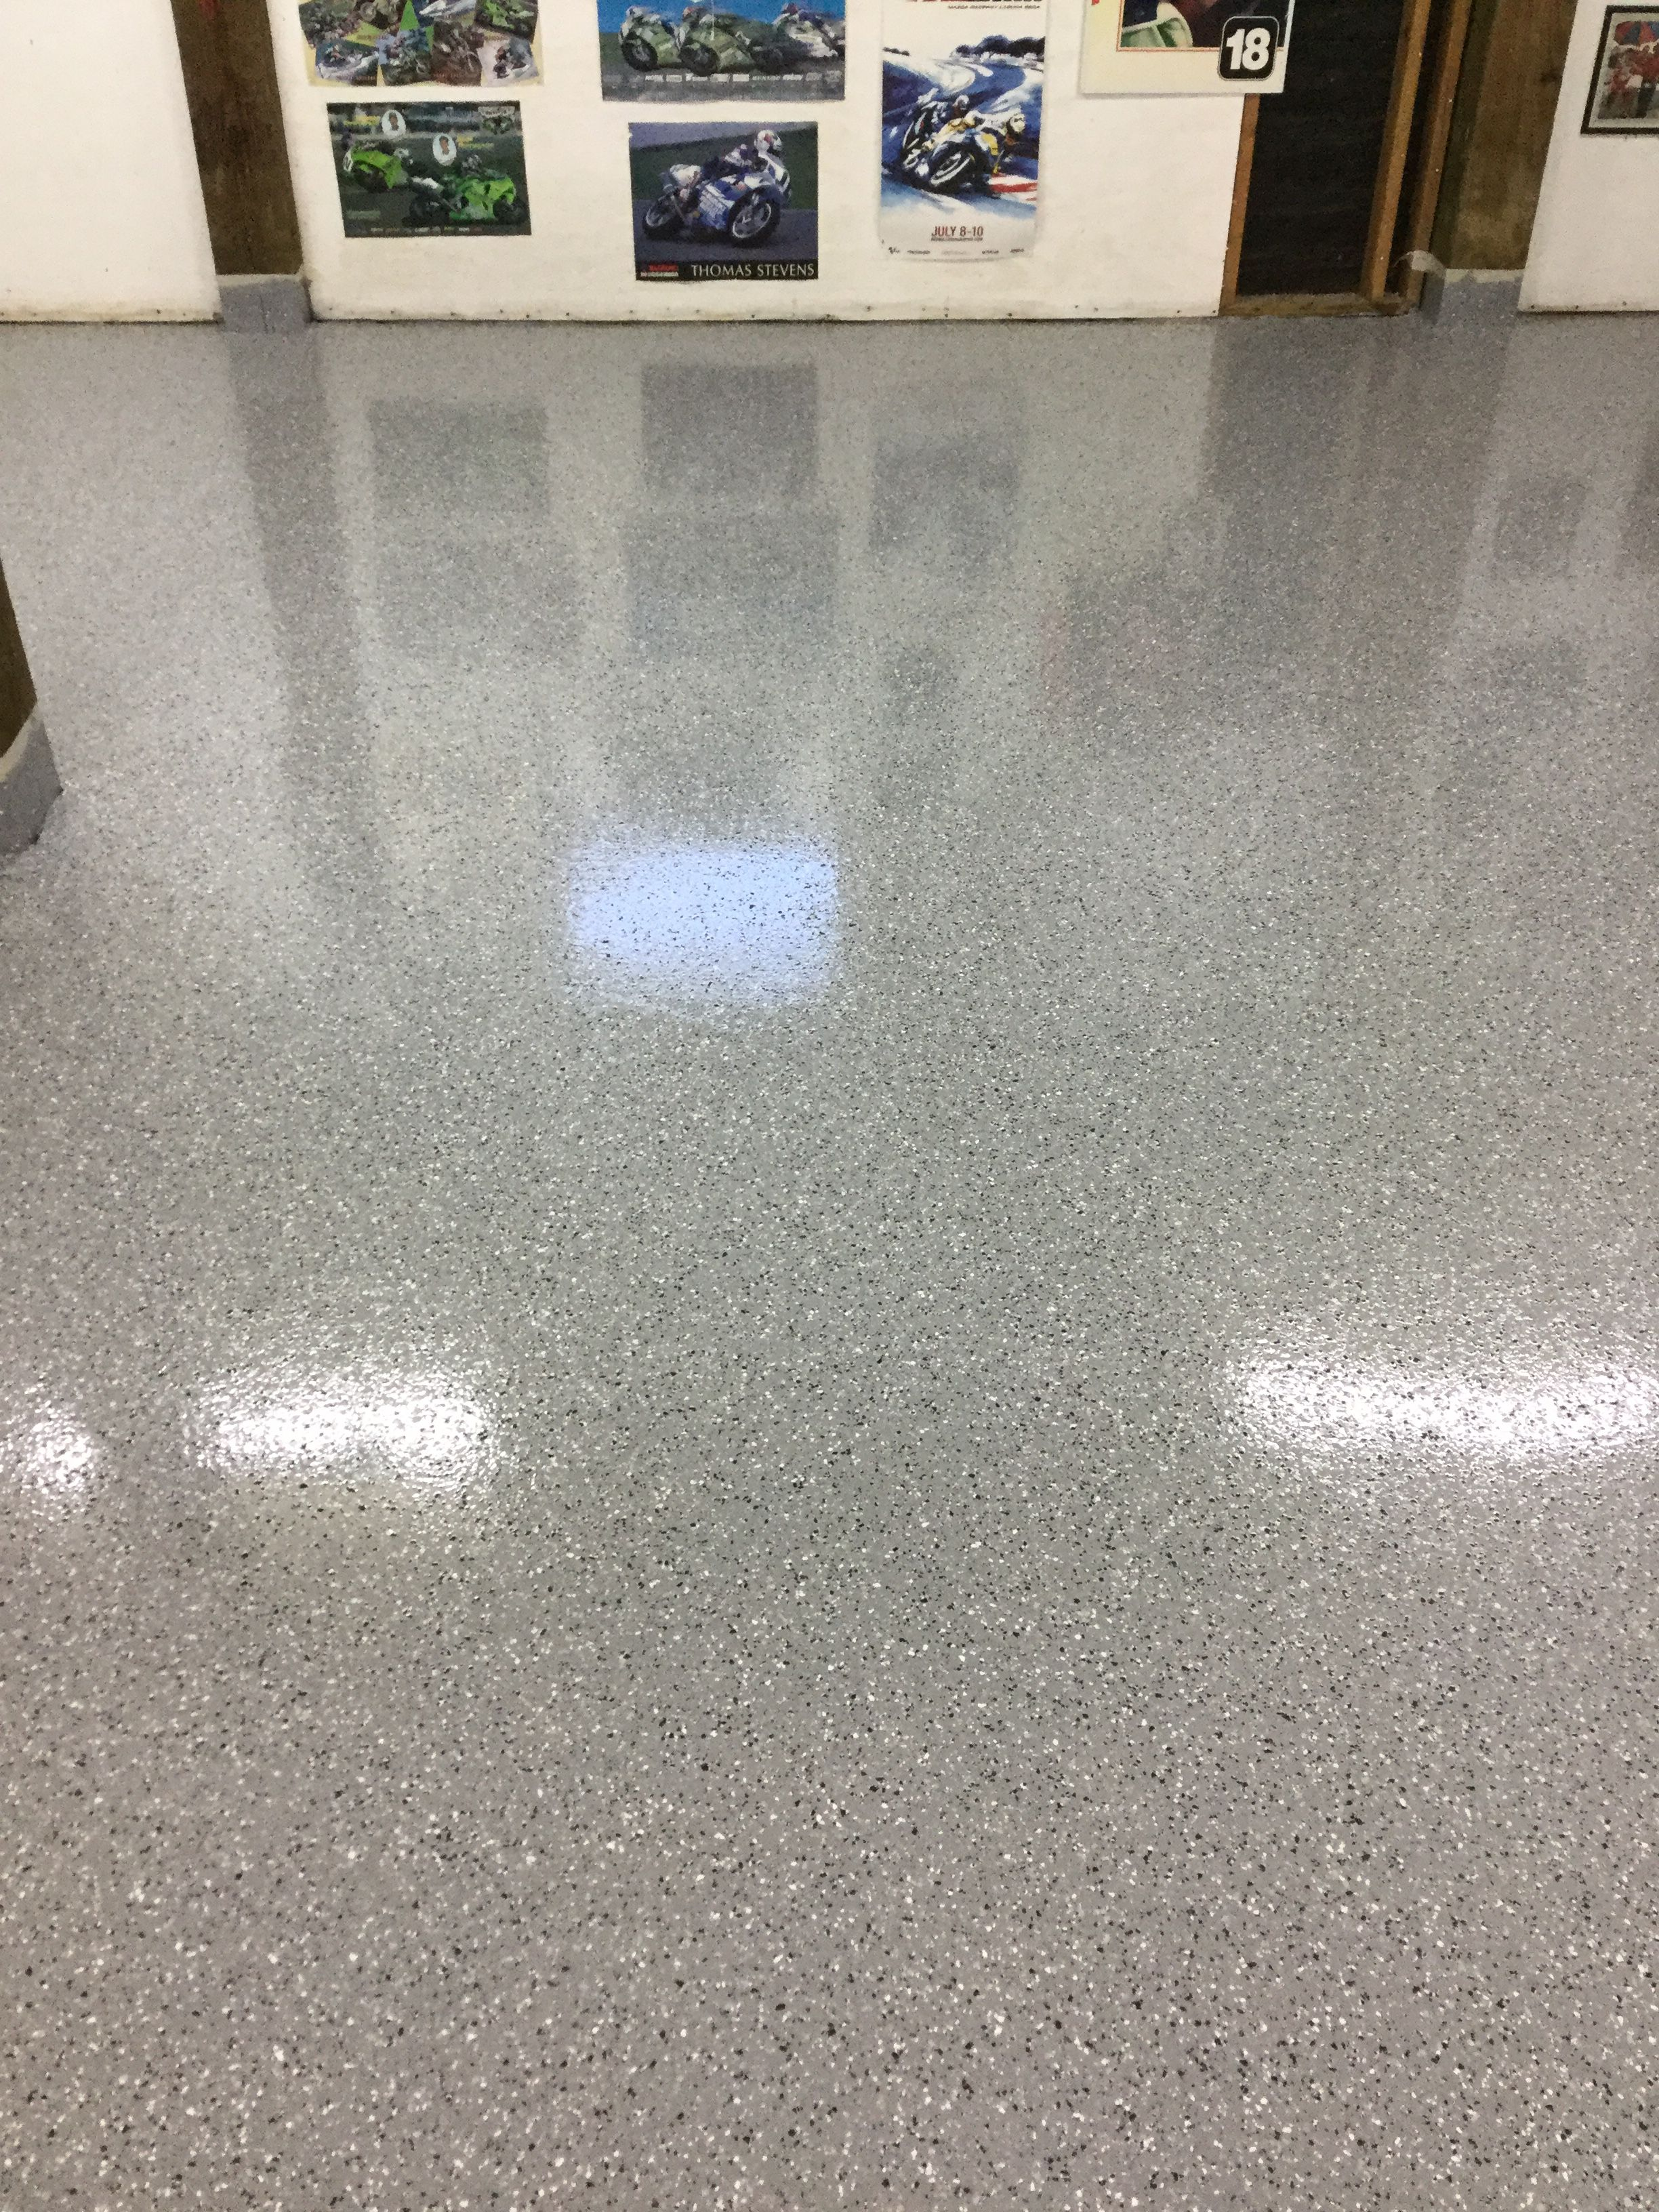 Garage Epoxy With Flakes Partial Flake Epoxy Garage Man Cave Floor Ideas Decorative